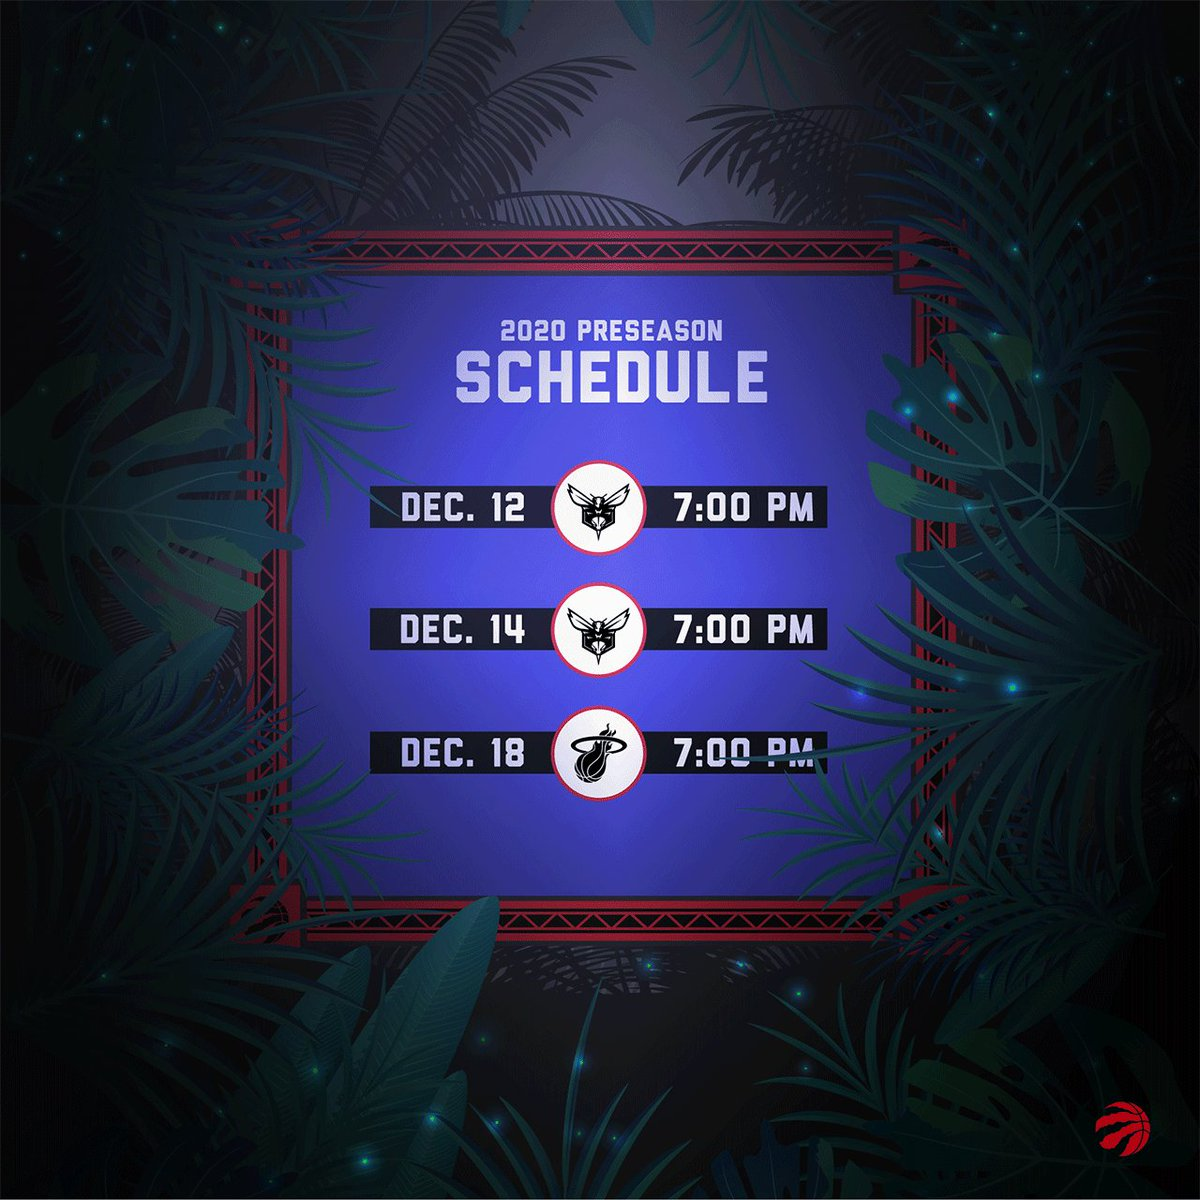 Toronto Raptors basketball returns December 12th 😍 #WeTheNorth   🔗 https://t.co/O7Hpk1Rgyw https://t.co/JP1qELWVqv